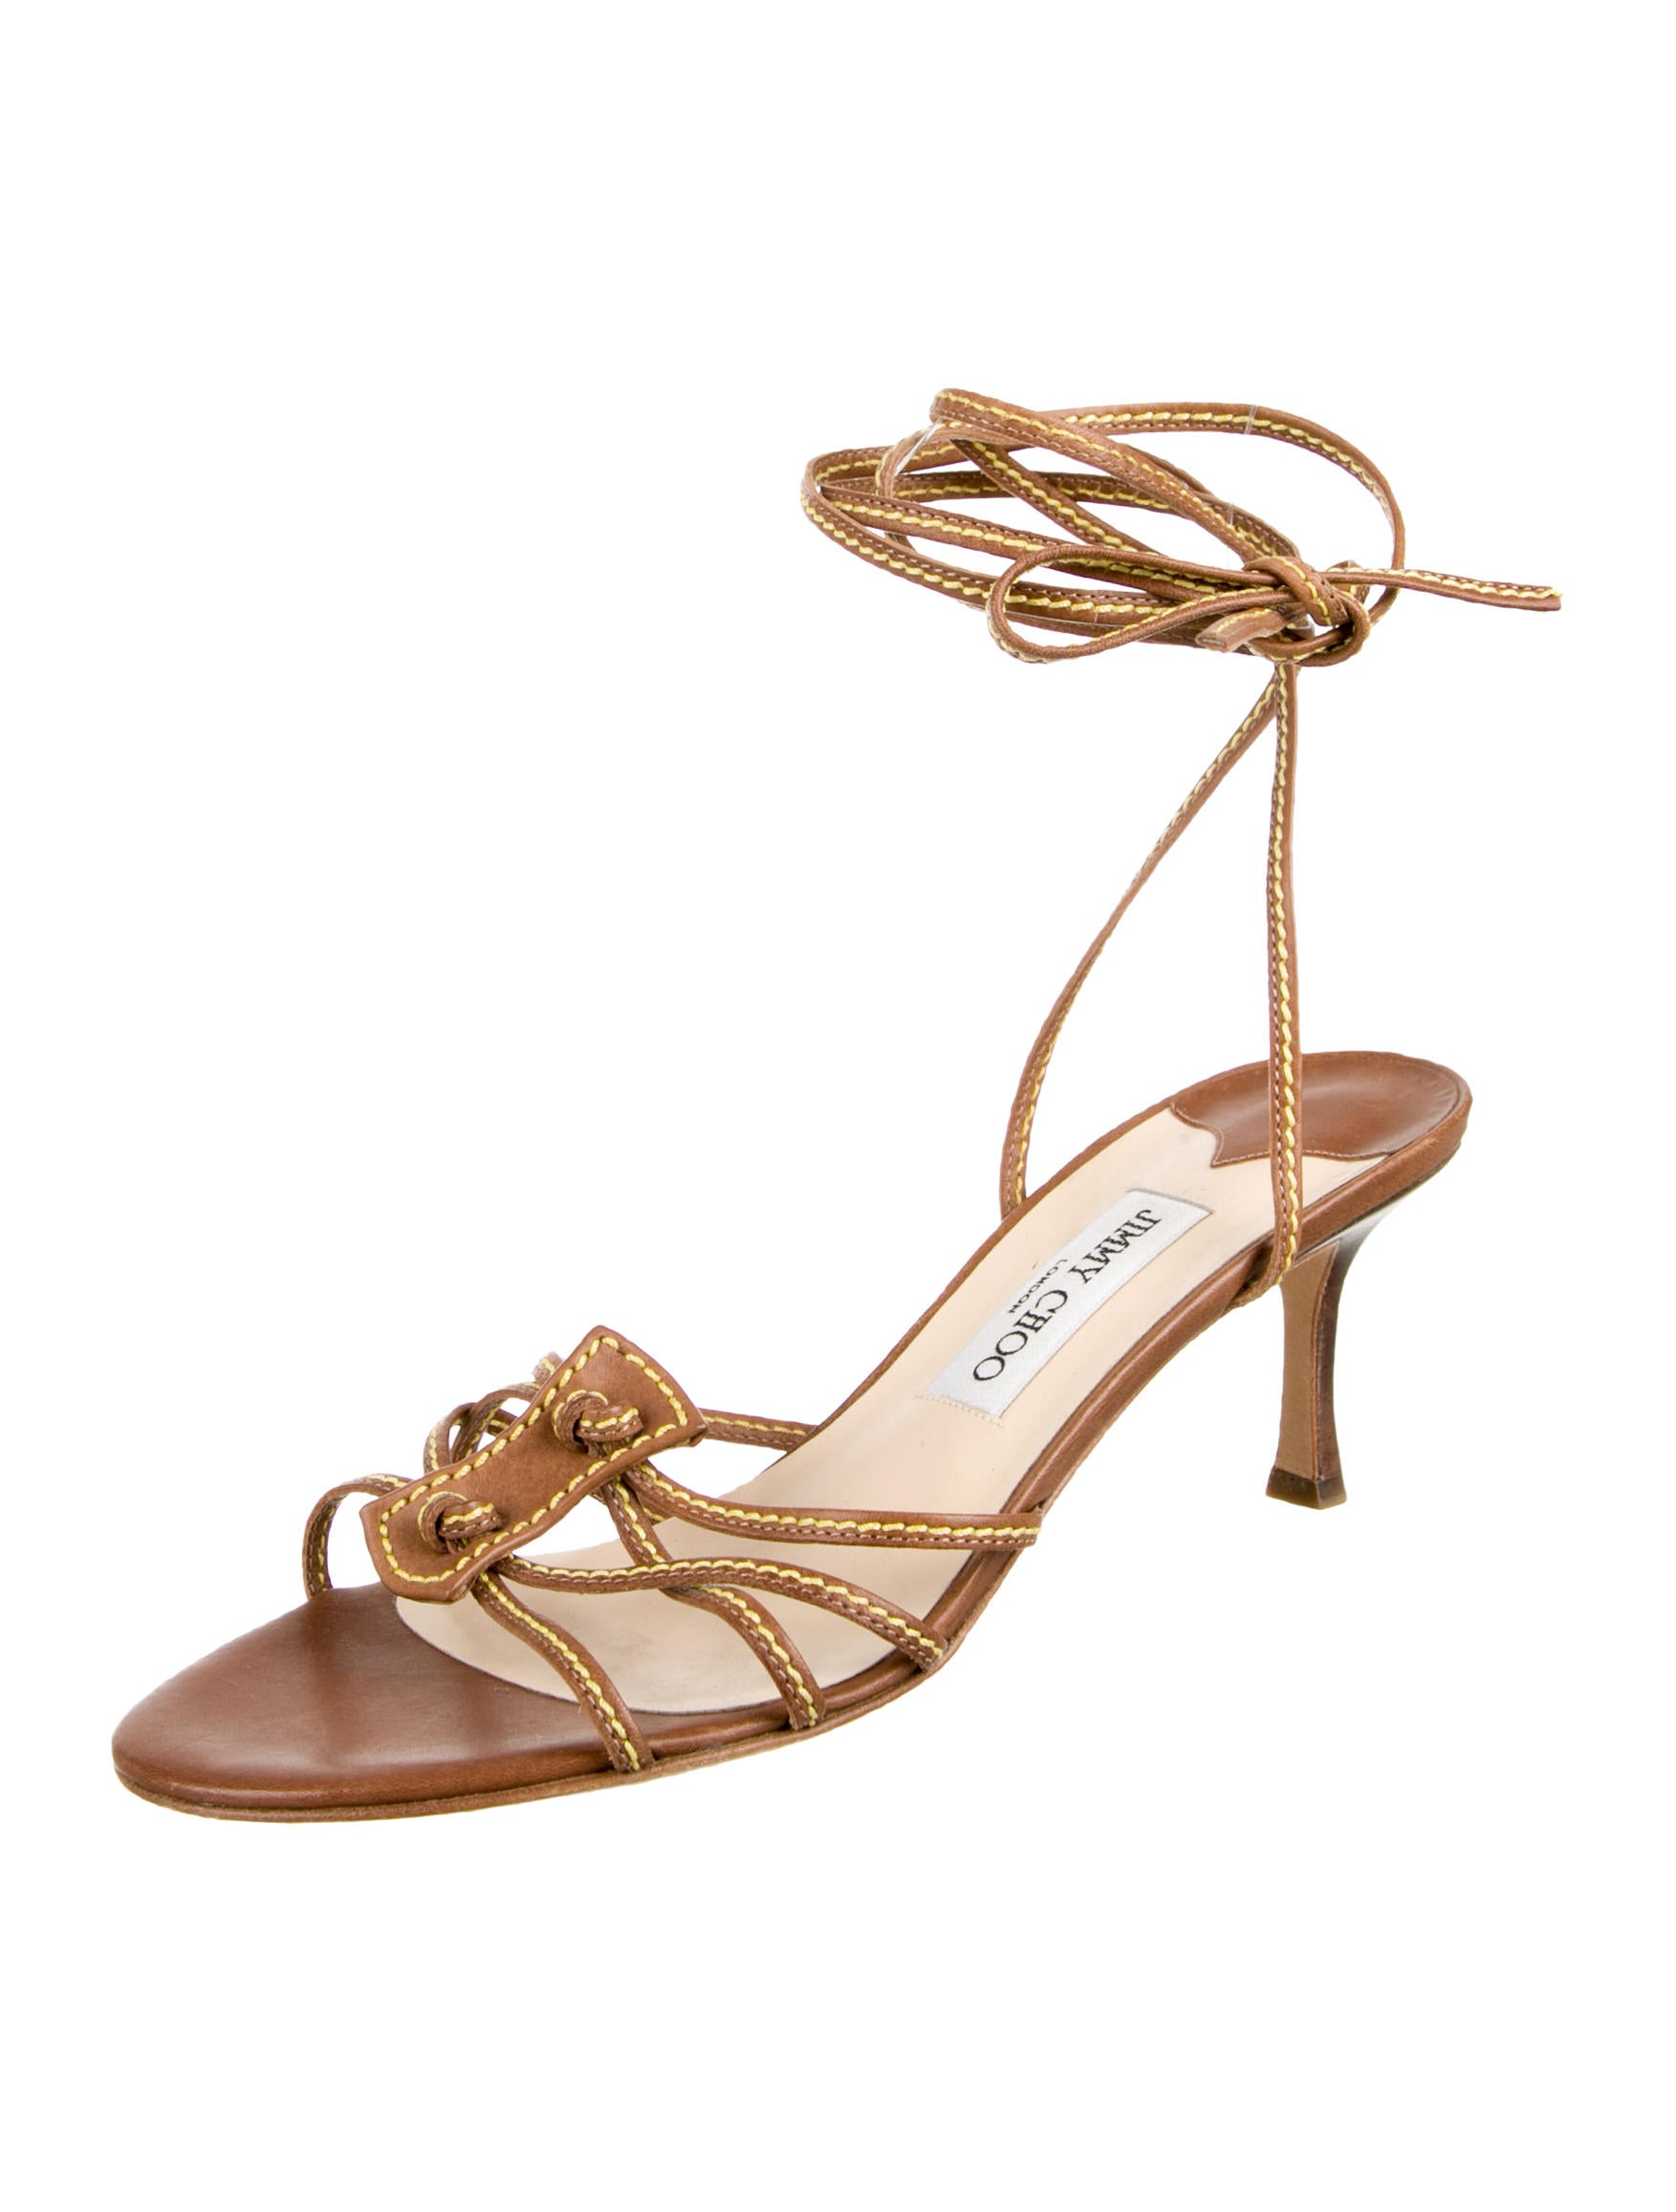 Jimmy Choo Leather Lace-Up Sandals - Shoes - JIM41009 ...